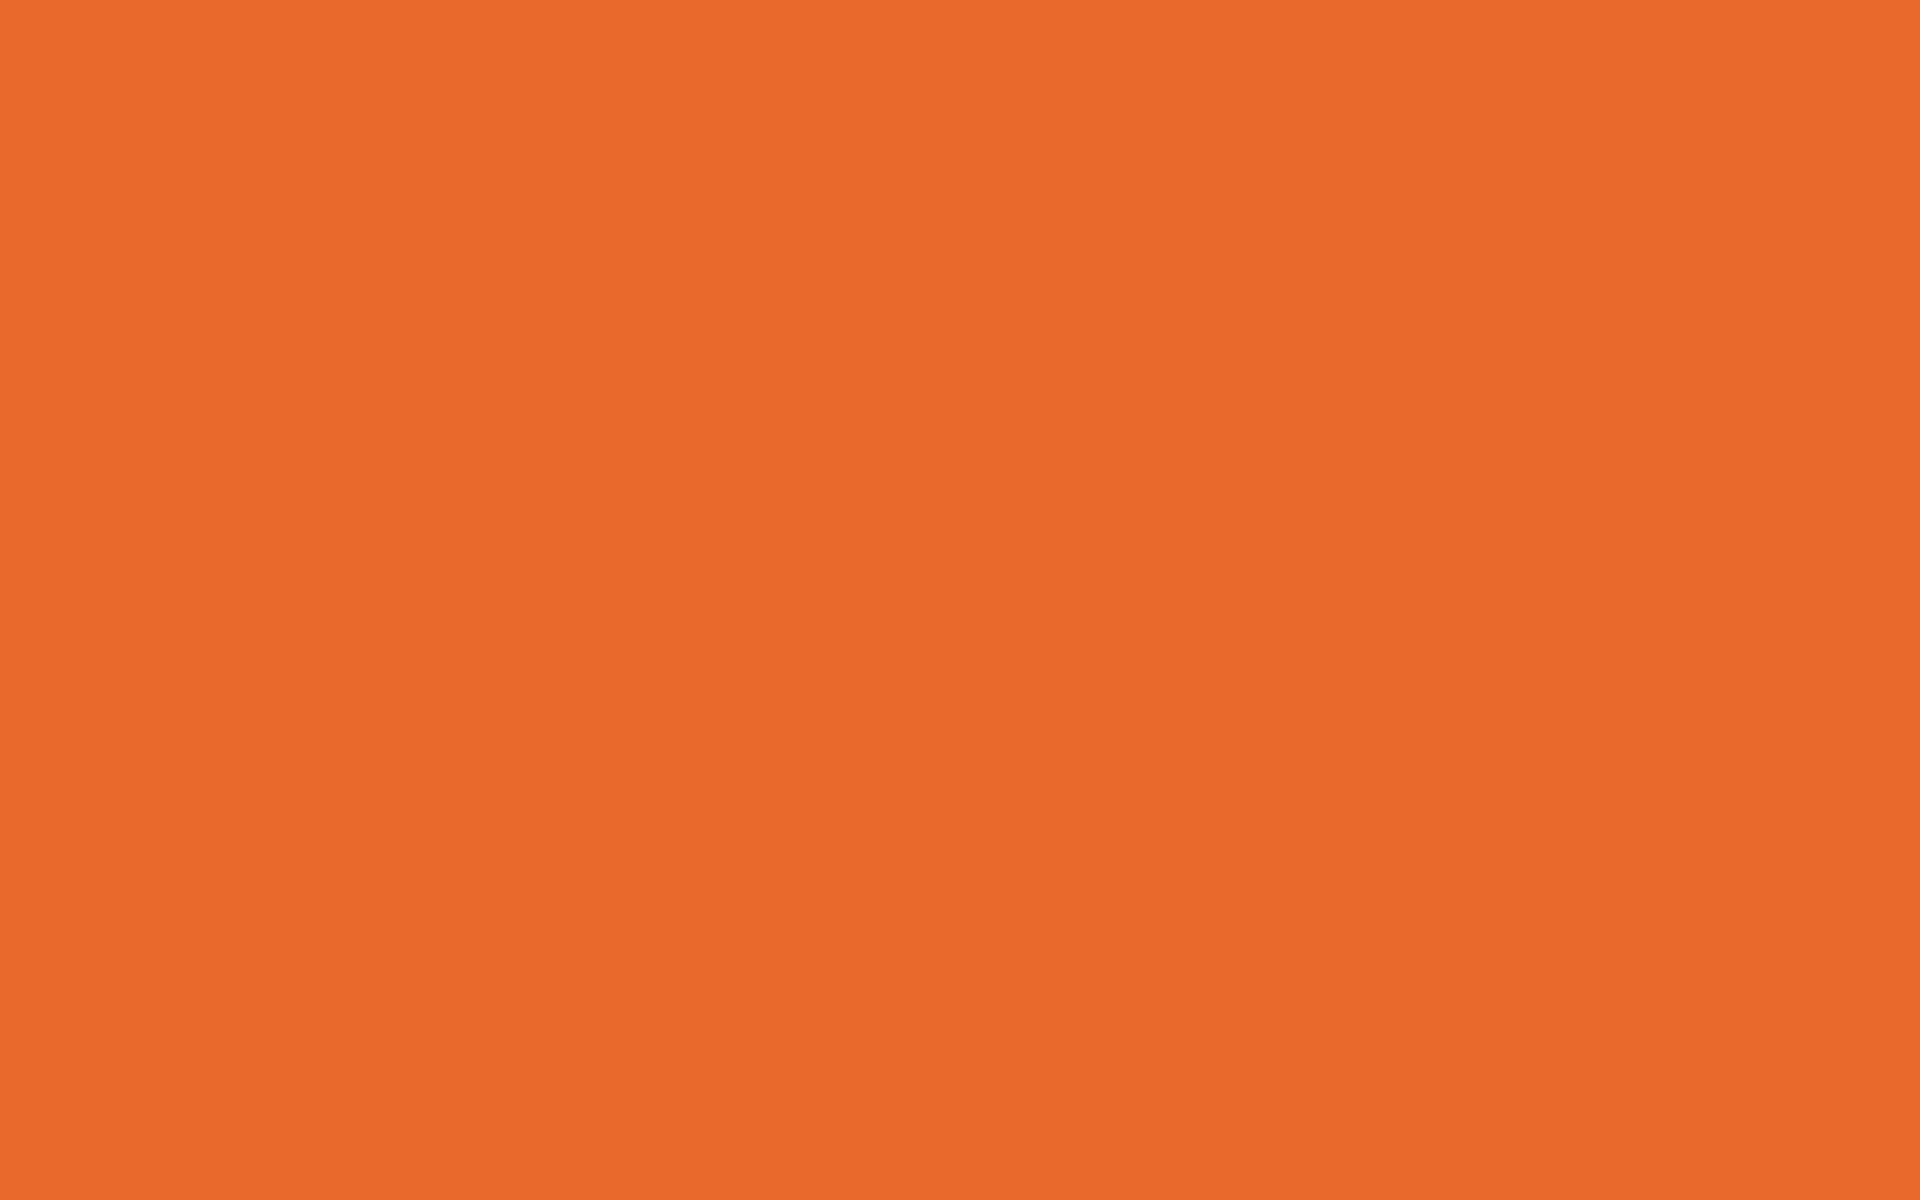 1920x1200 Deep Carrot Orange Solid Color Background